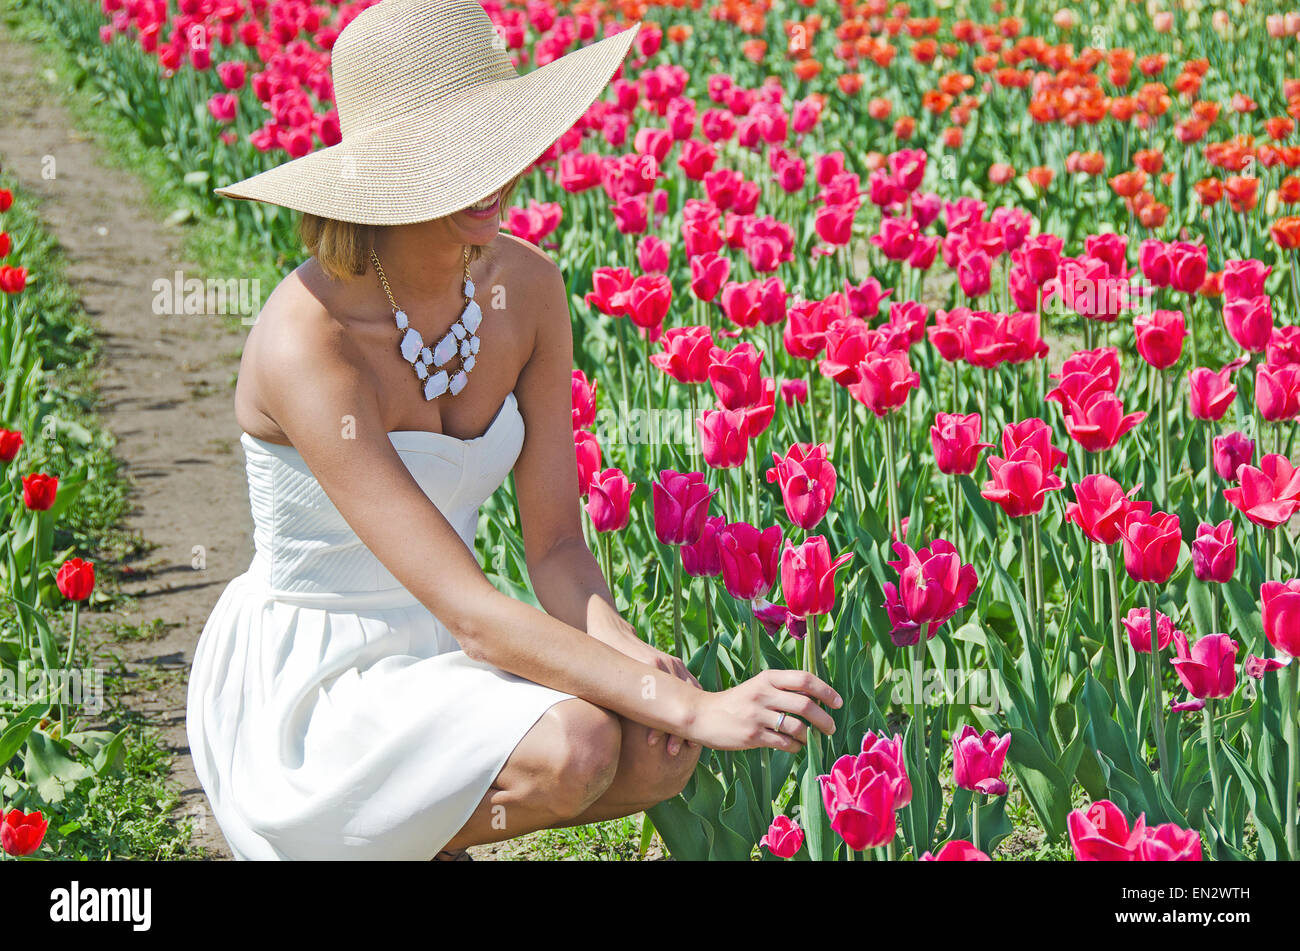 Pretty woman with fashion hat and strapless white sundress in a spring tulip garden. - Stock Image